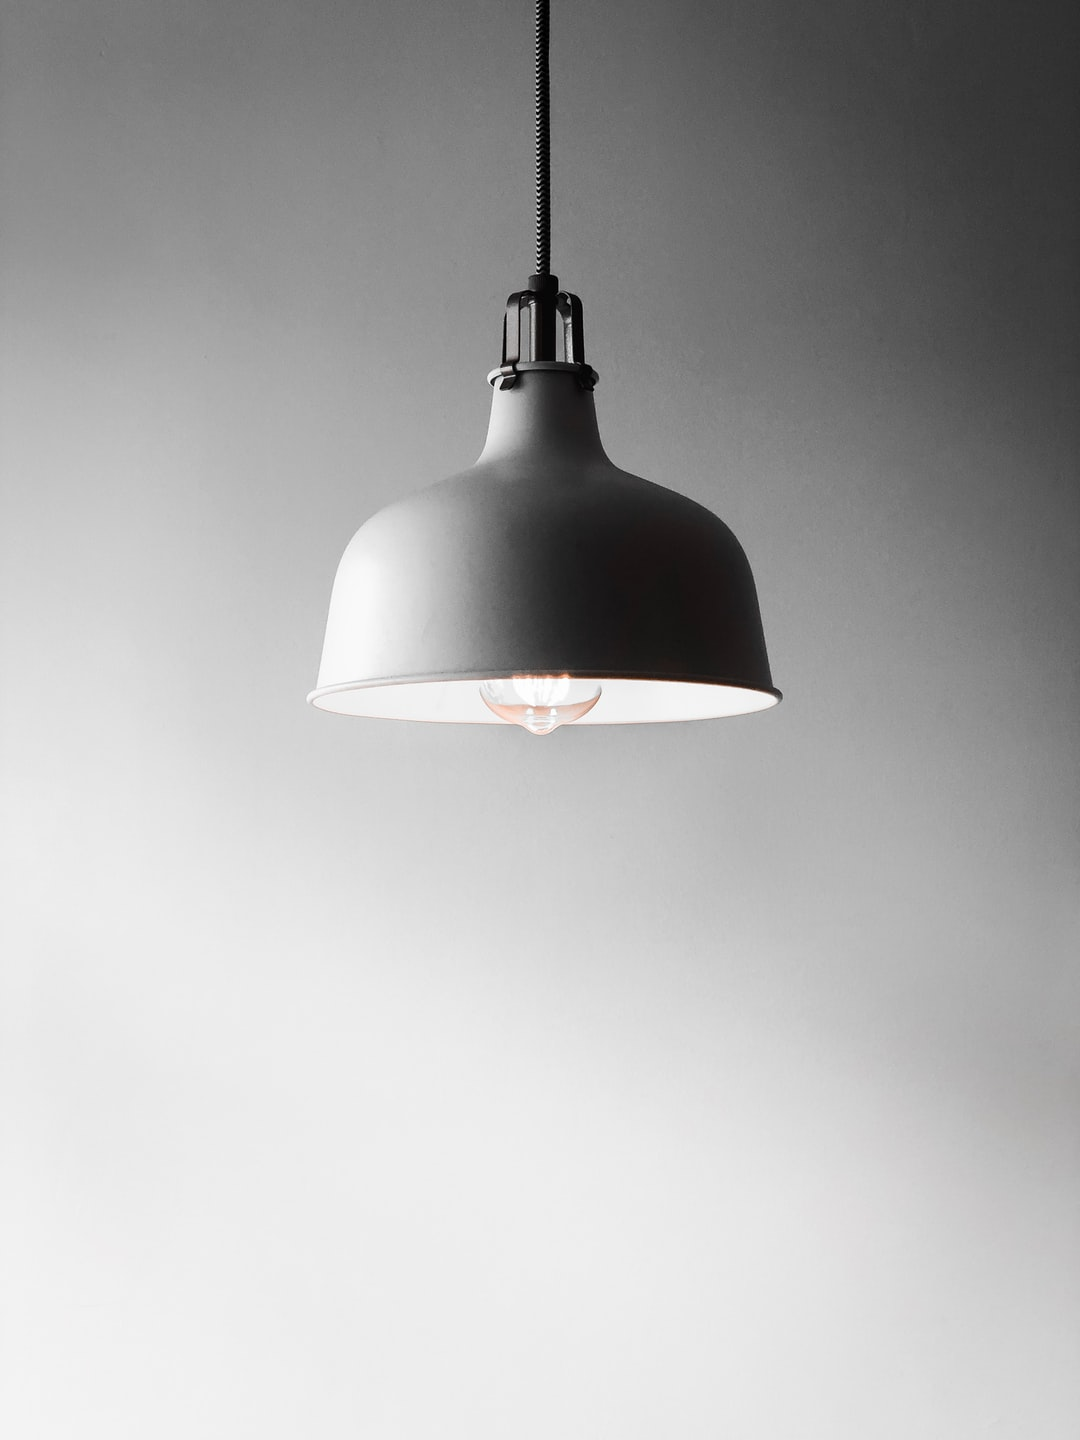 I feel like one of the most important parts of a cafe's ambiance stems from its lighting. The design of the lamps play a role too. Something minimalist always makes for a good choice.